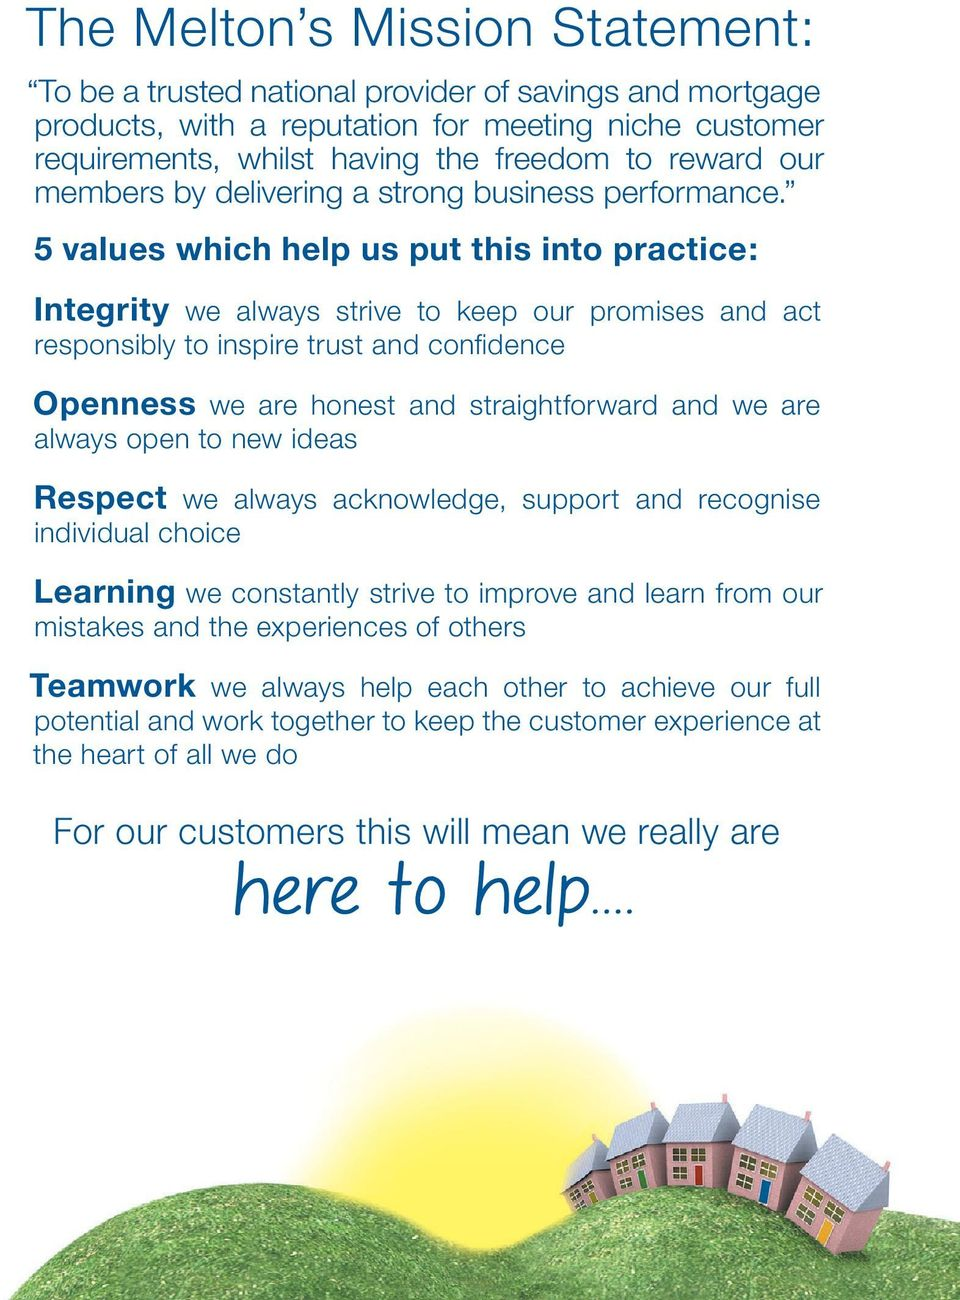 5 values which help us put this into practice: Integrity we always strive to keep our promises and act responsibly to inspire trust and confidence Openness we are honest and straightforward and we